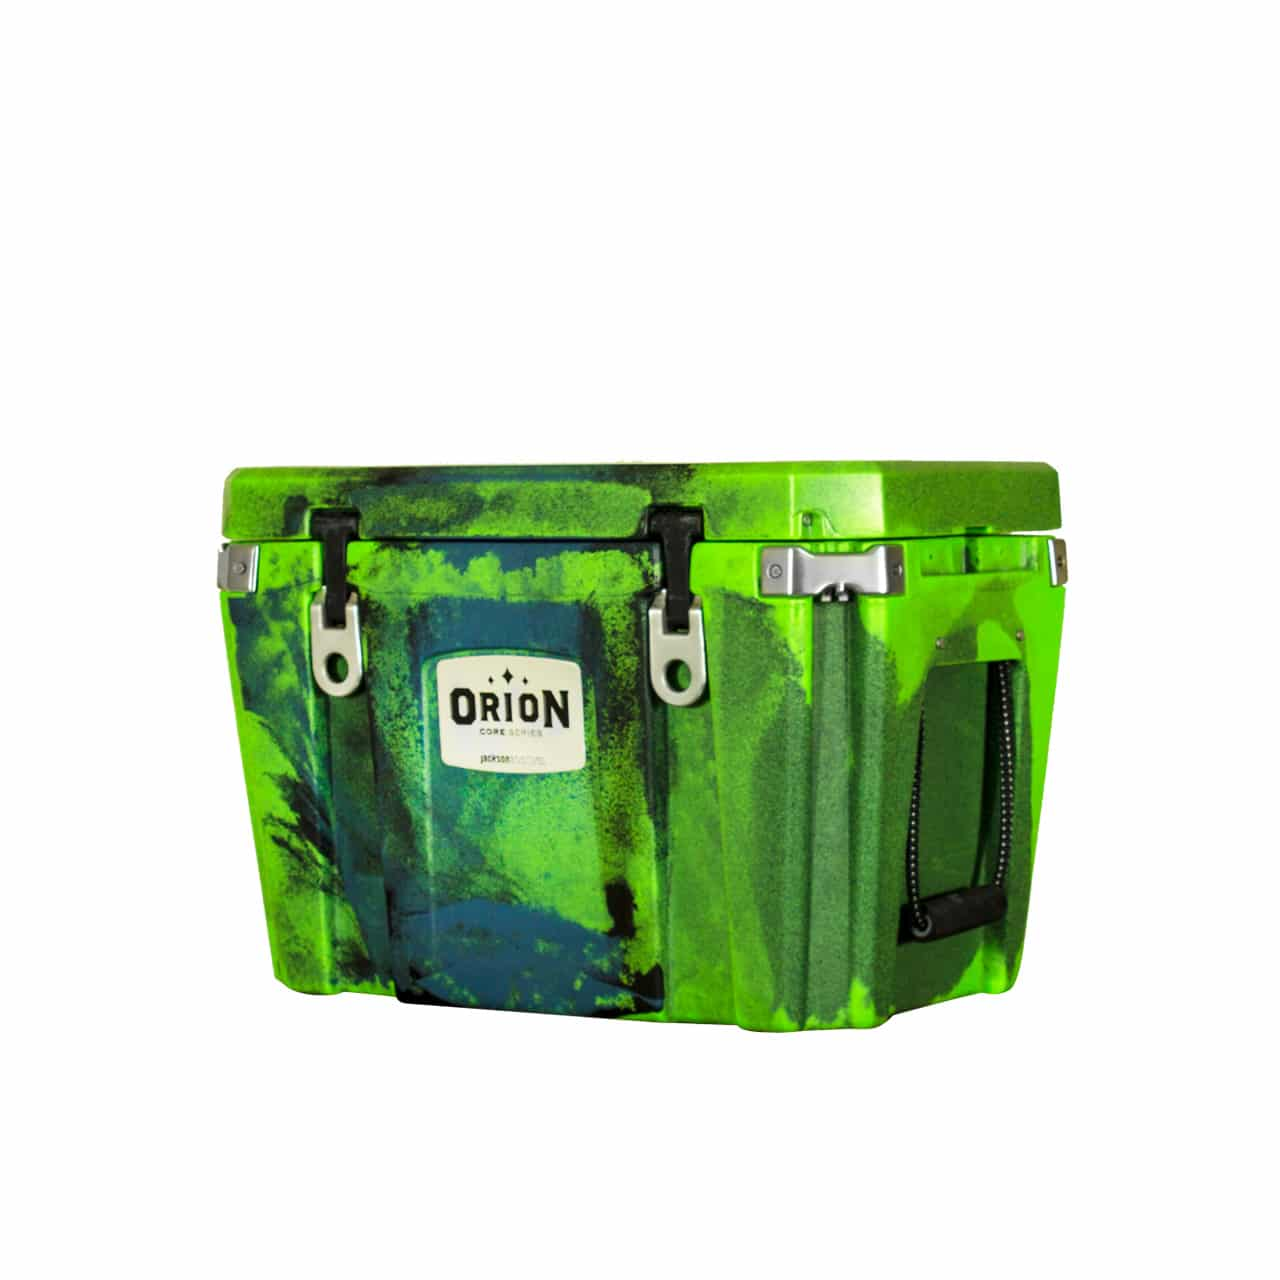 Orion Core 45 quart cooler